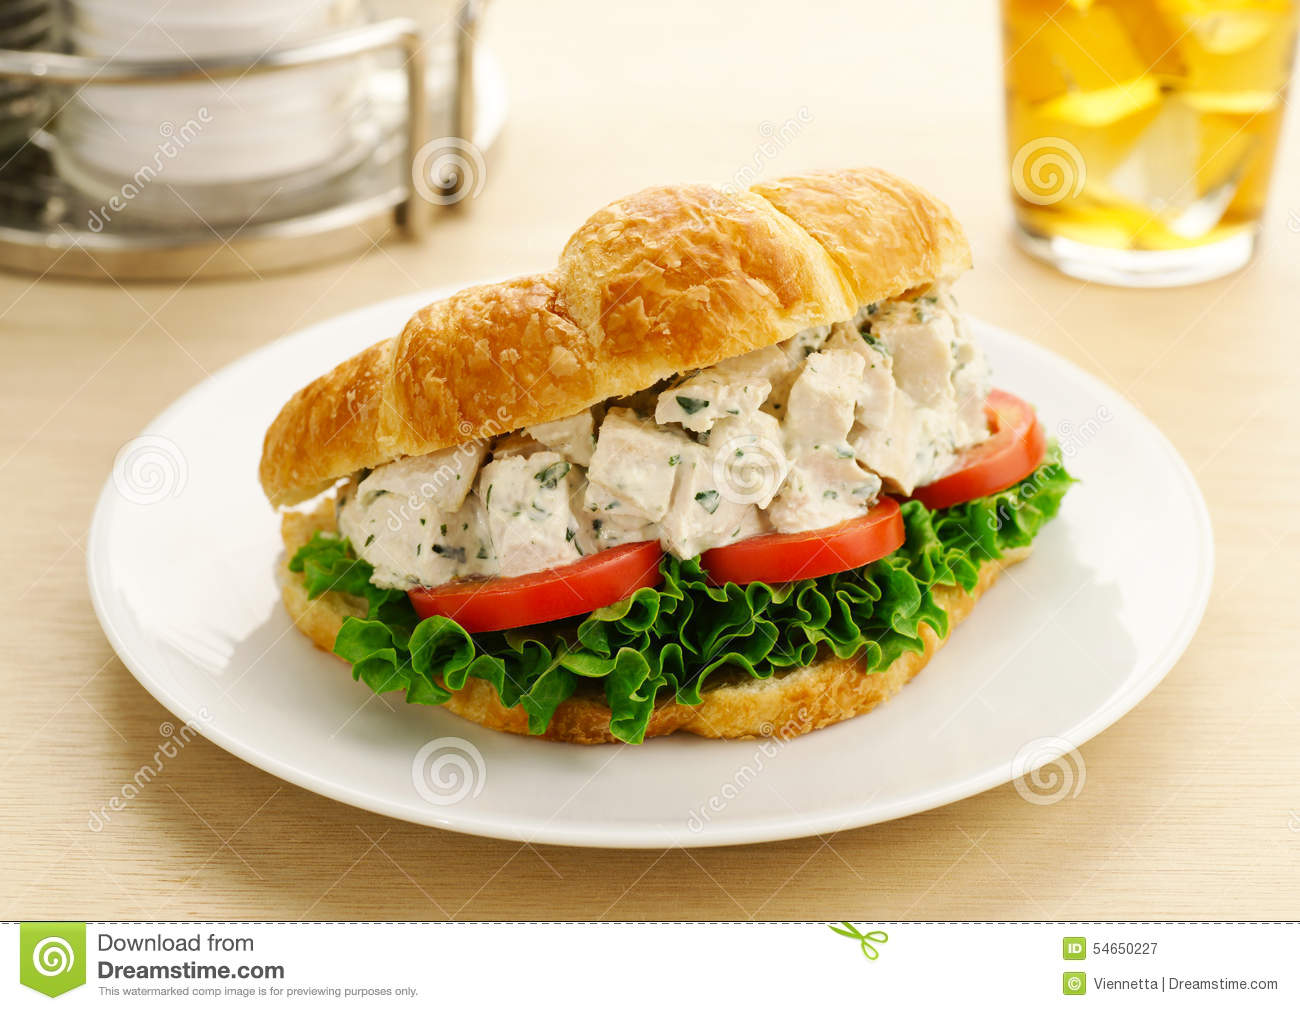 How Tell When Lunch Meats Bad 2995824 additionally  as well Croissant Sandwich Smoked Meat Prosciutto Di Parma Sun Dried Tomatoes Fresh Spinach Basil Dark Wooden as well Catering further Stock Photo Thinly Sliced Ham Plate Image56057323. on ham and turkey cold cuts